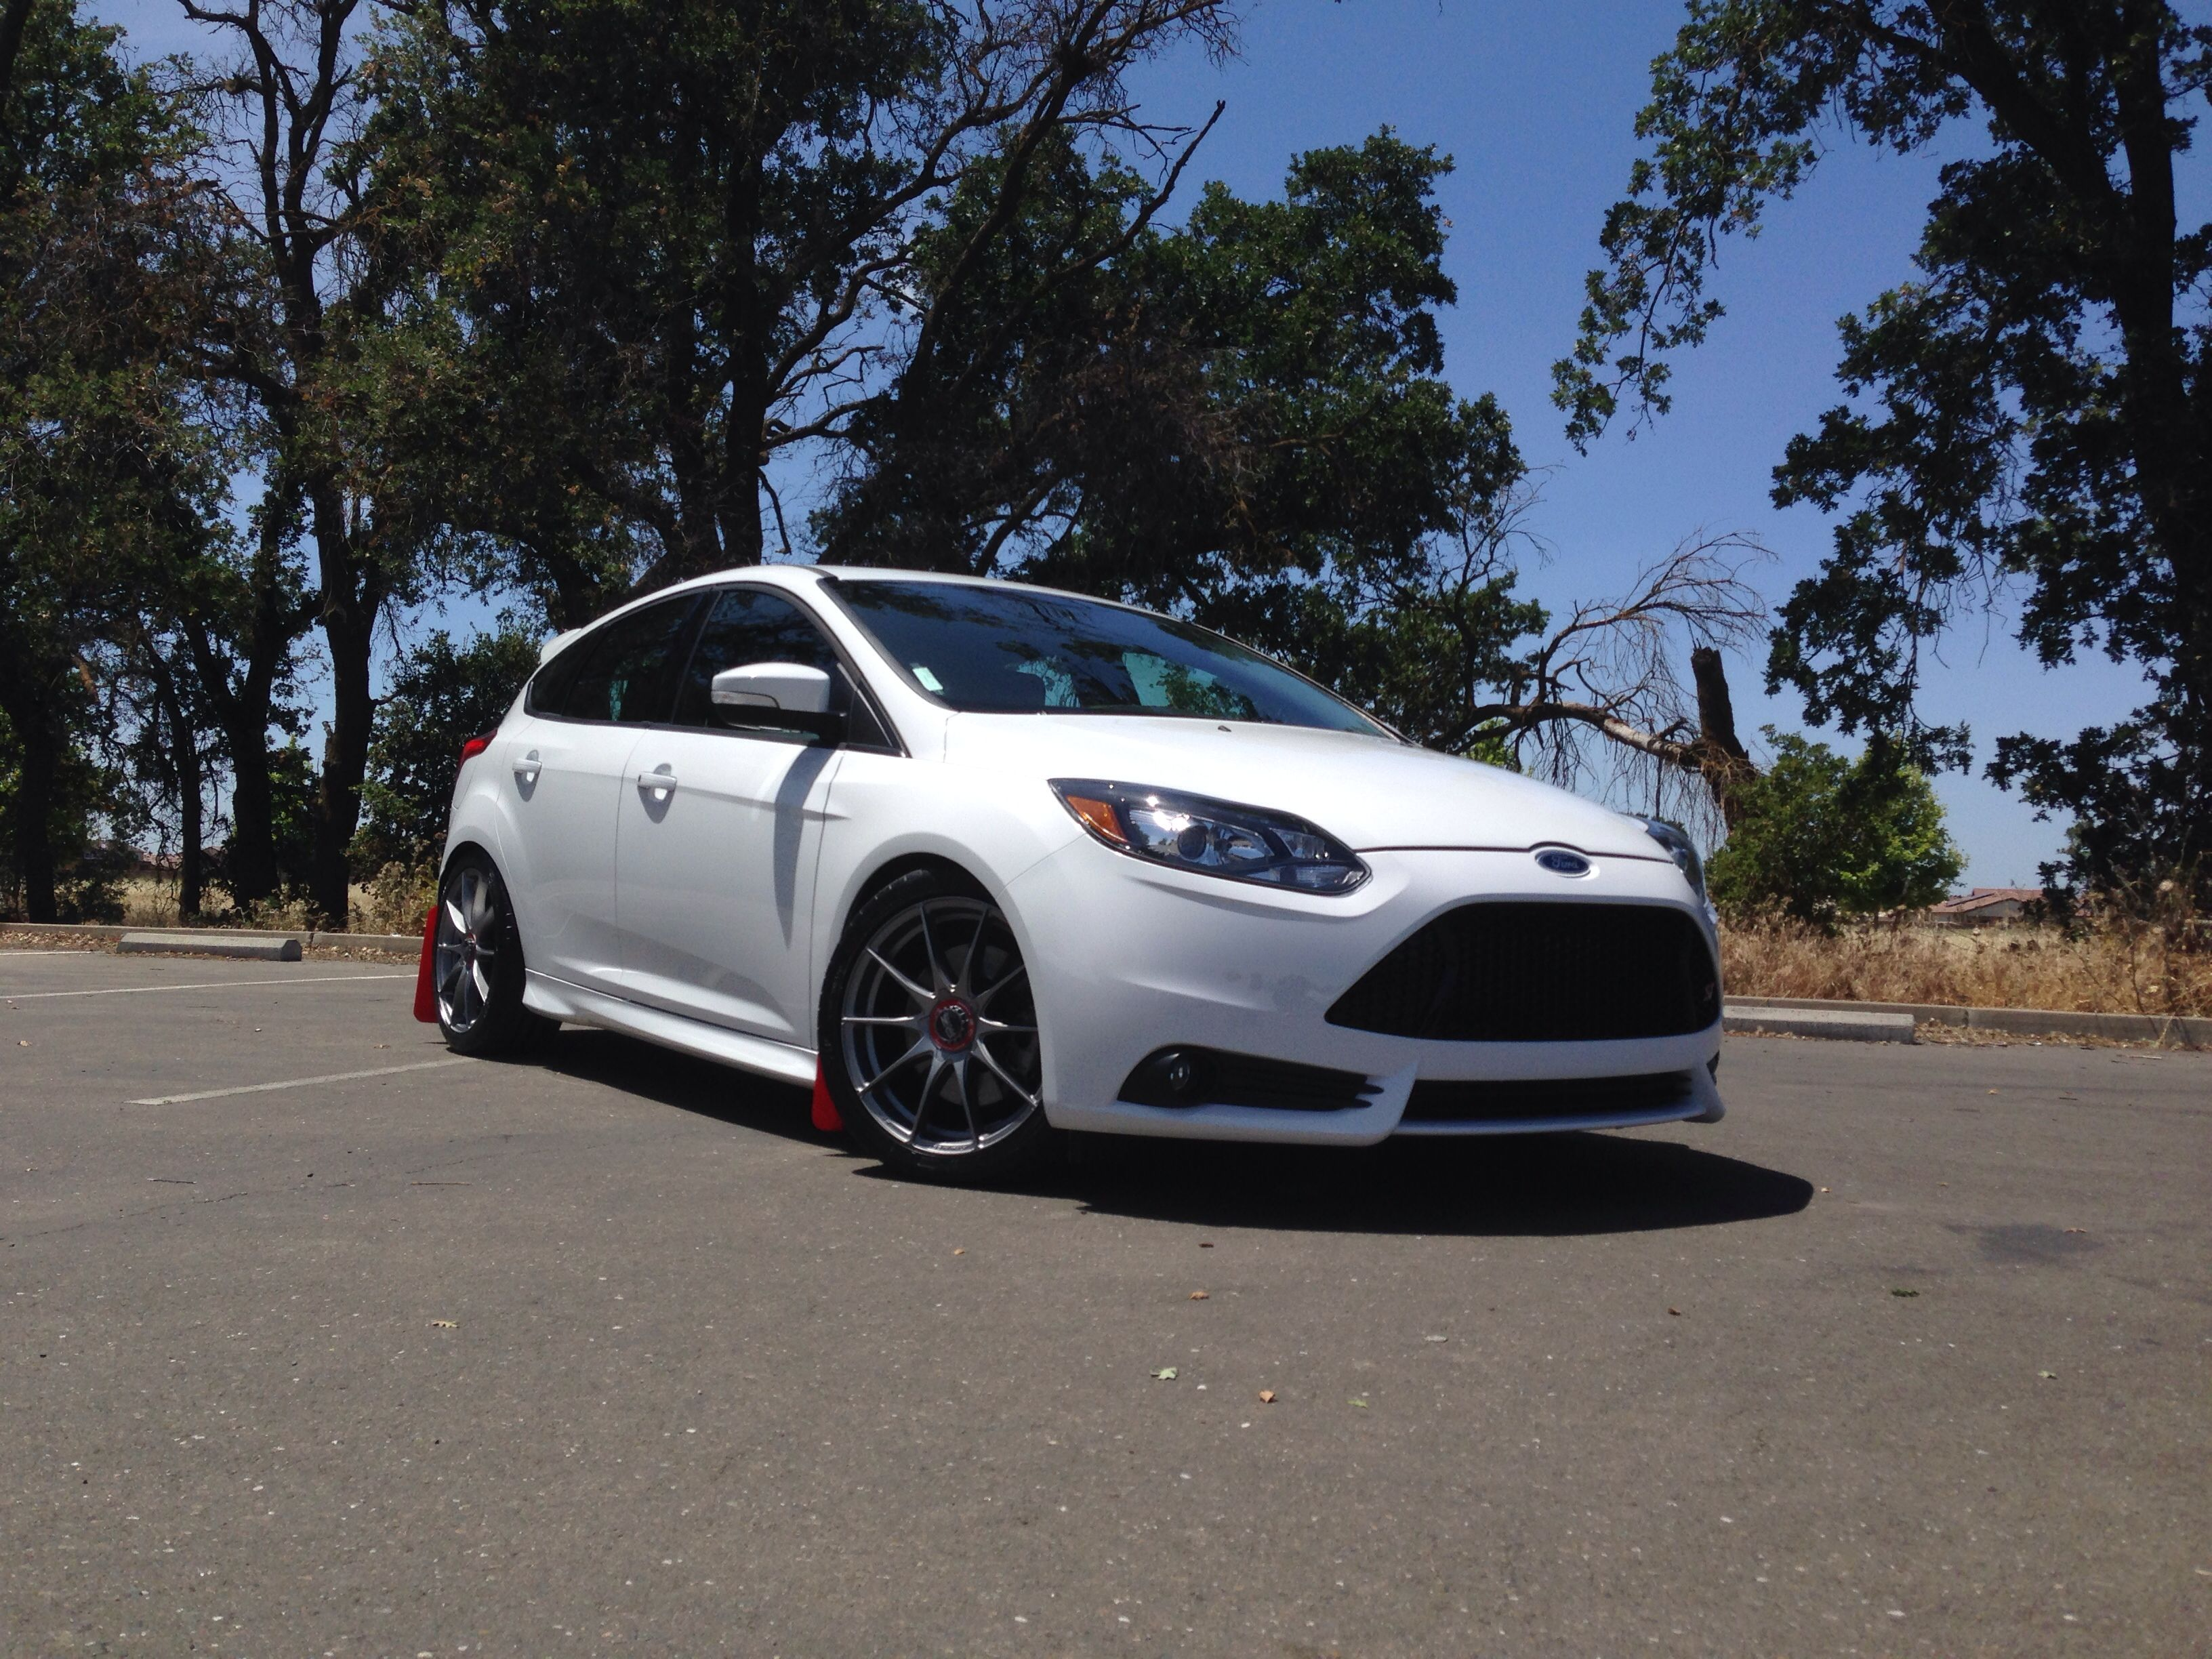 2013 ford focus st oz racing hlt wheels rally armor mud flaps eibach lowering